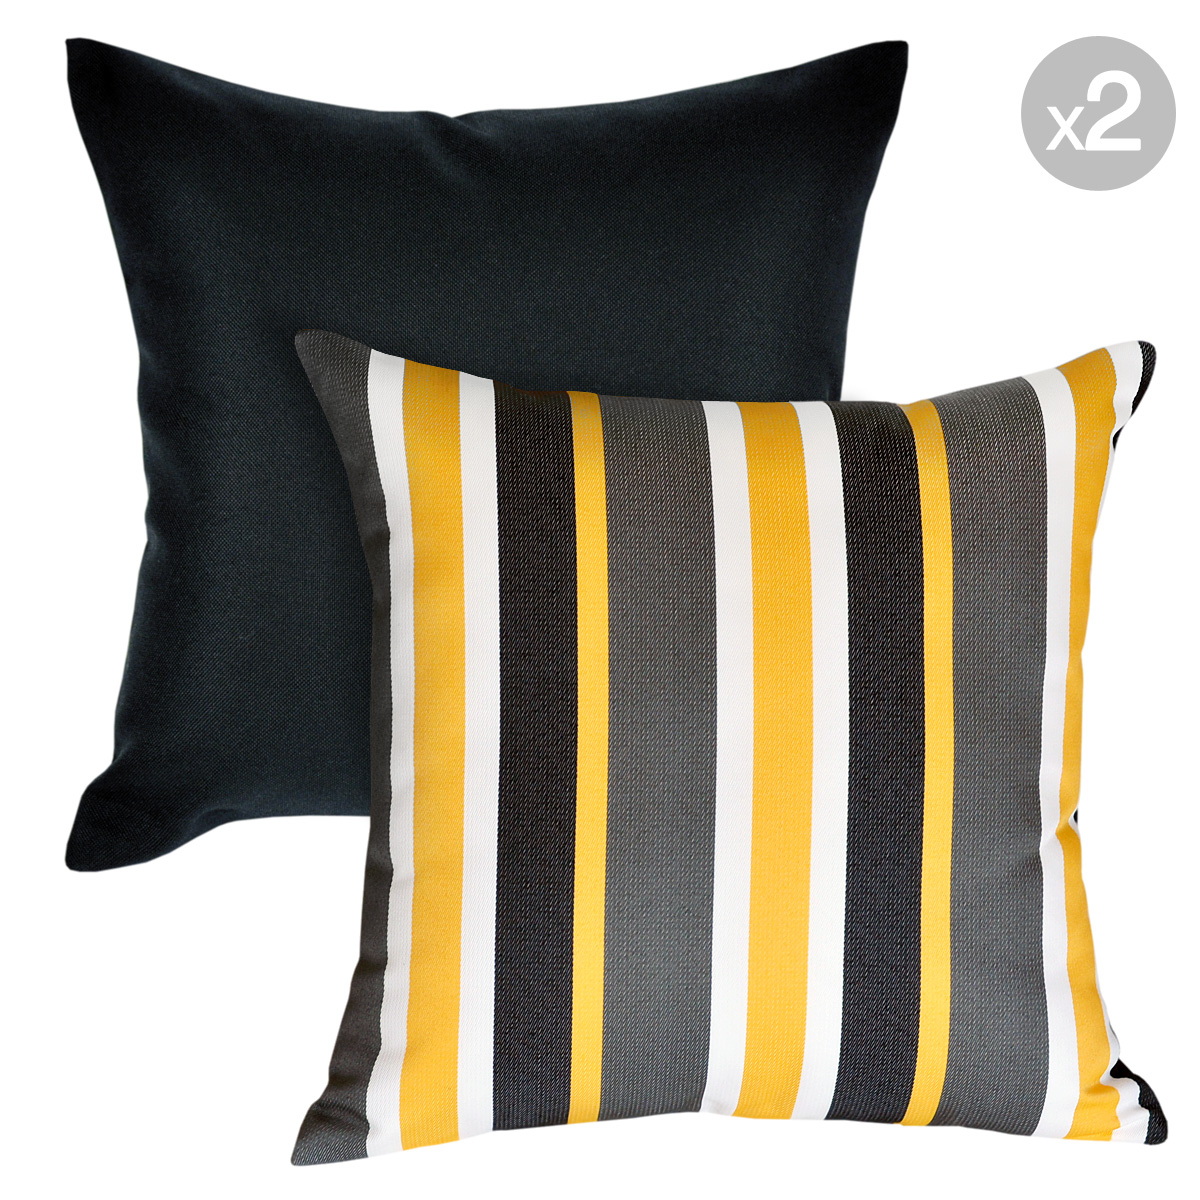 Details About Set Of 2 Kona Ash Mindill Sunshine Yellow Outdoor Cushion Covers 45x45cm